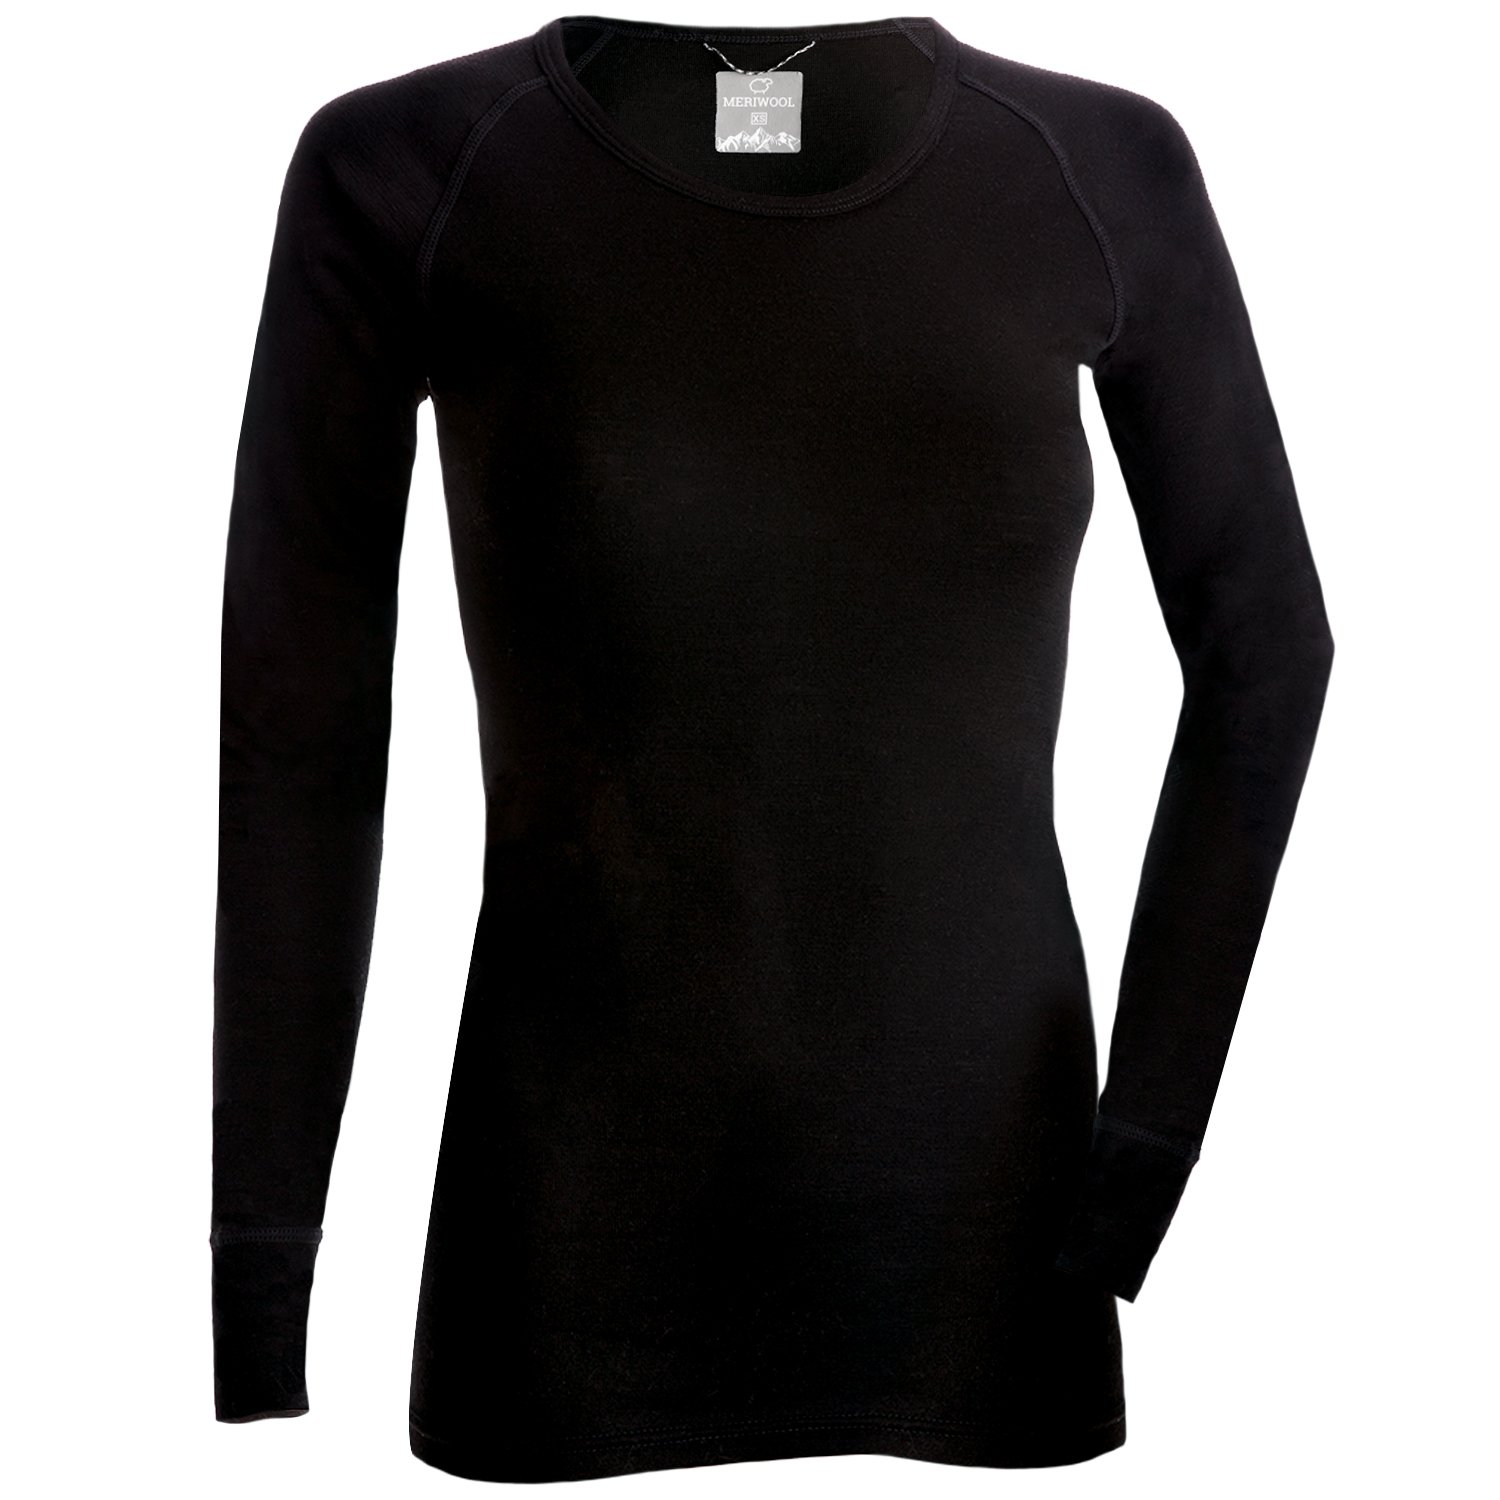 MERIWOOL Womens Merino Wool Lightweight Form Fit Baselayer Pullover Top - Small